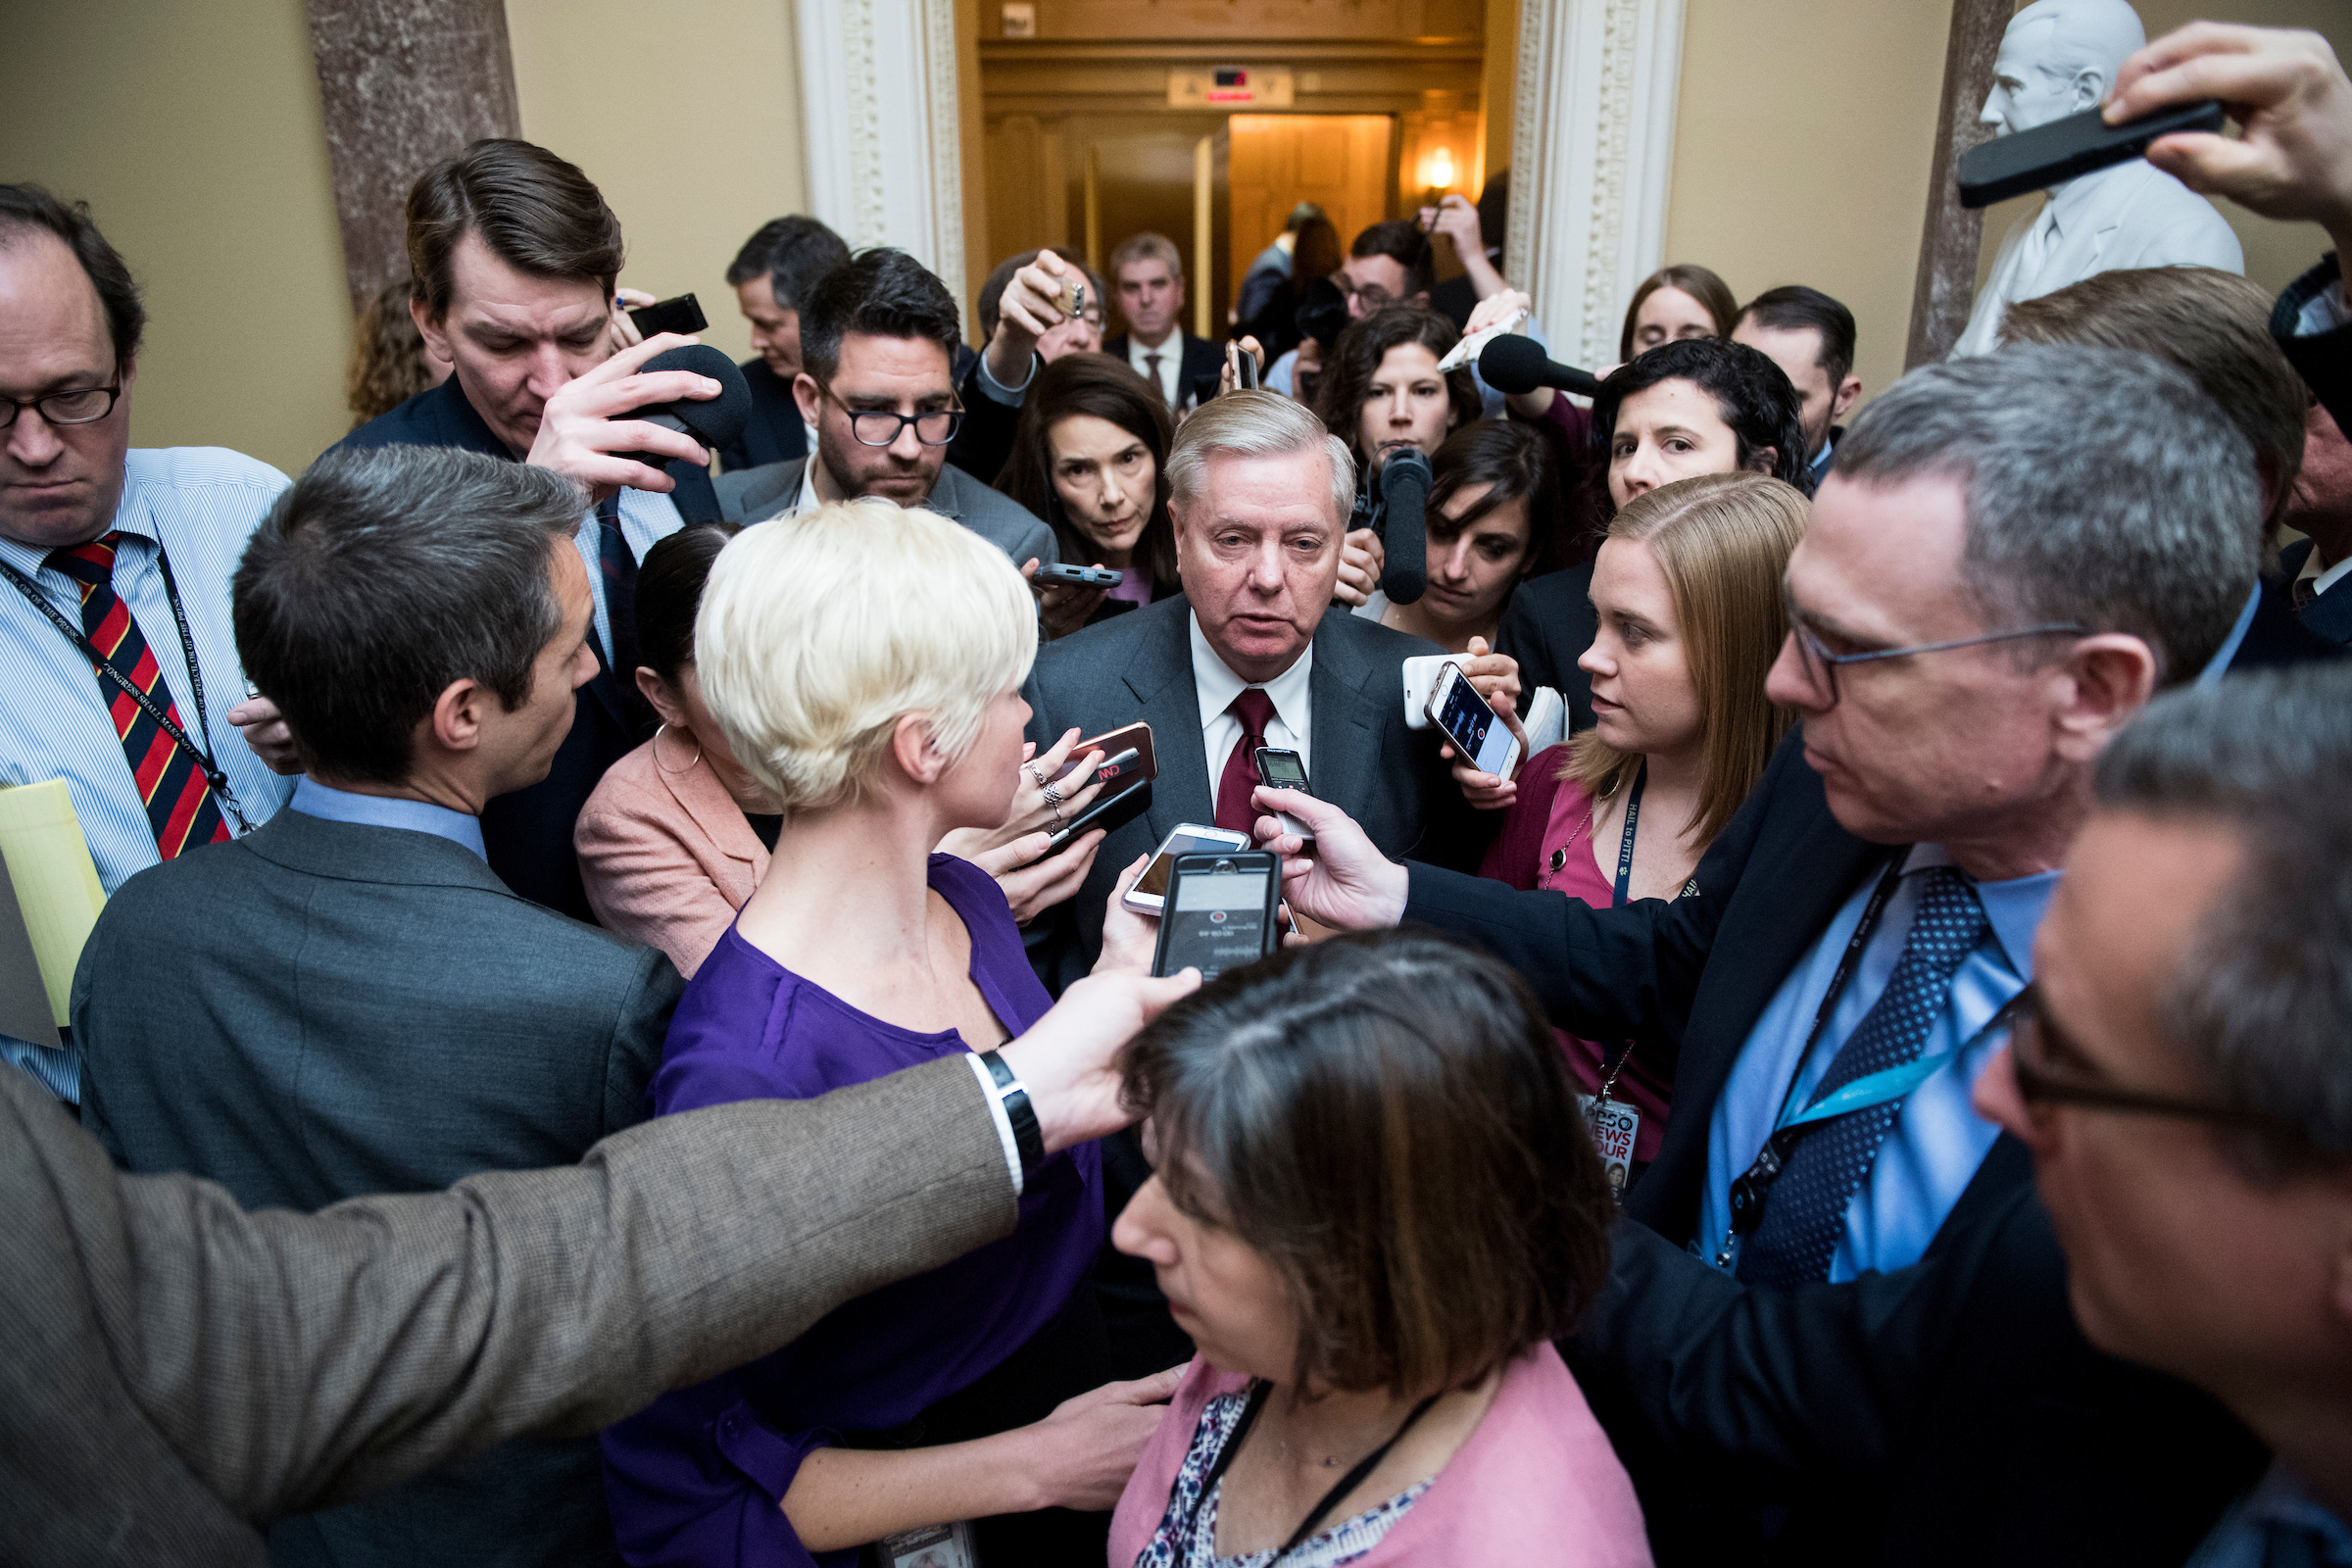 Reporters swarm around Sen. Lindsey Graham, R-S.C., has he leaves the Senate Republicans' policy lunch in the Capitol on Tuesday, Feb. 6, 2018. (Photo By Bill Clark/CQ Roll Call)